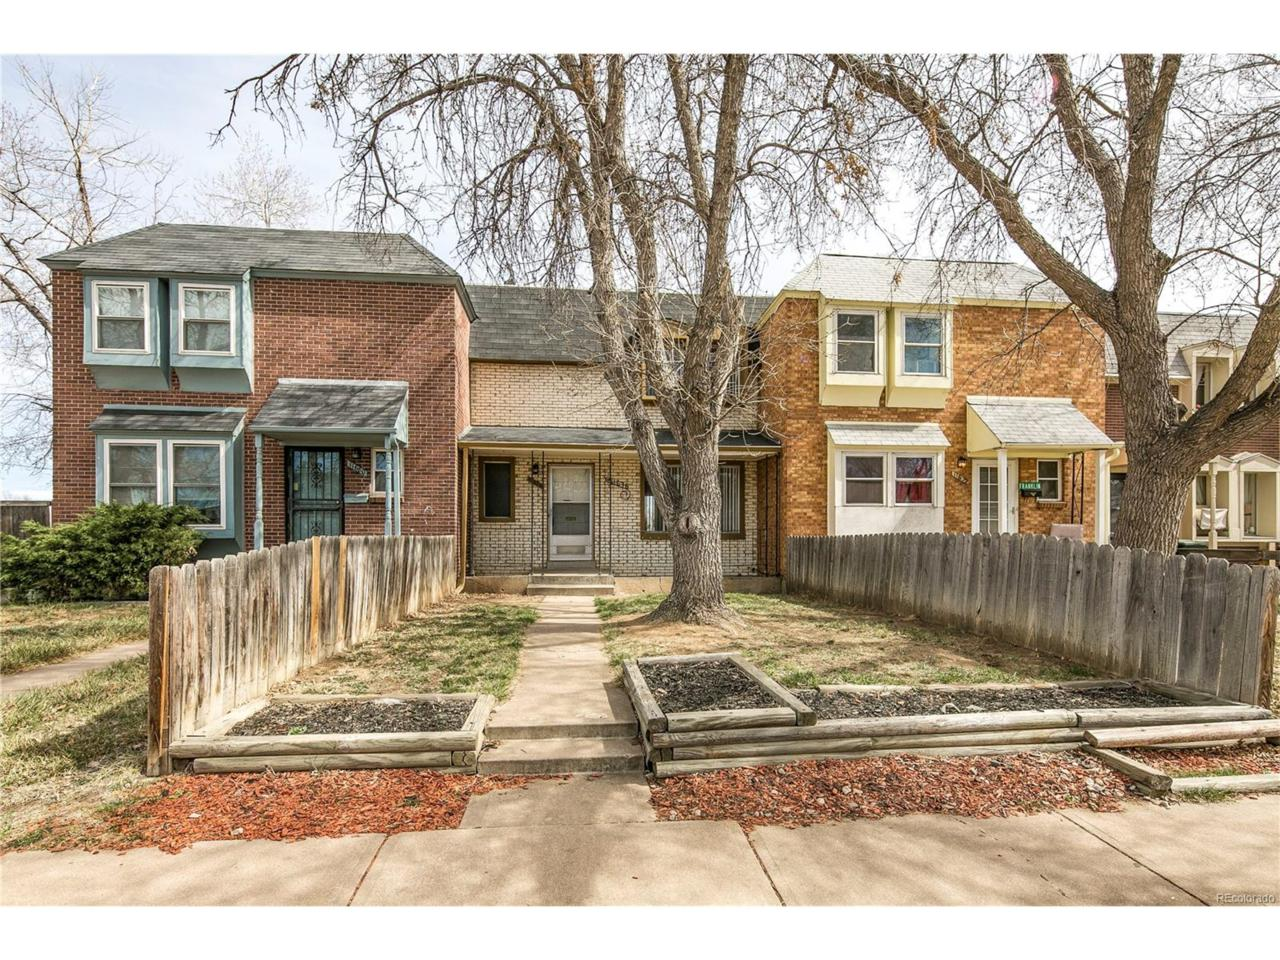 11676 Pearl Street, Northglenn, CO 80233 (MLS #6178856) :: 8z Real Estate